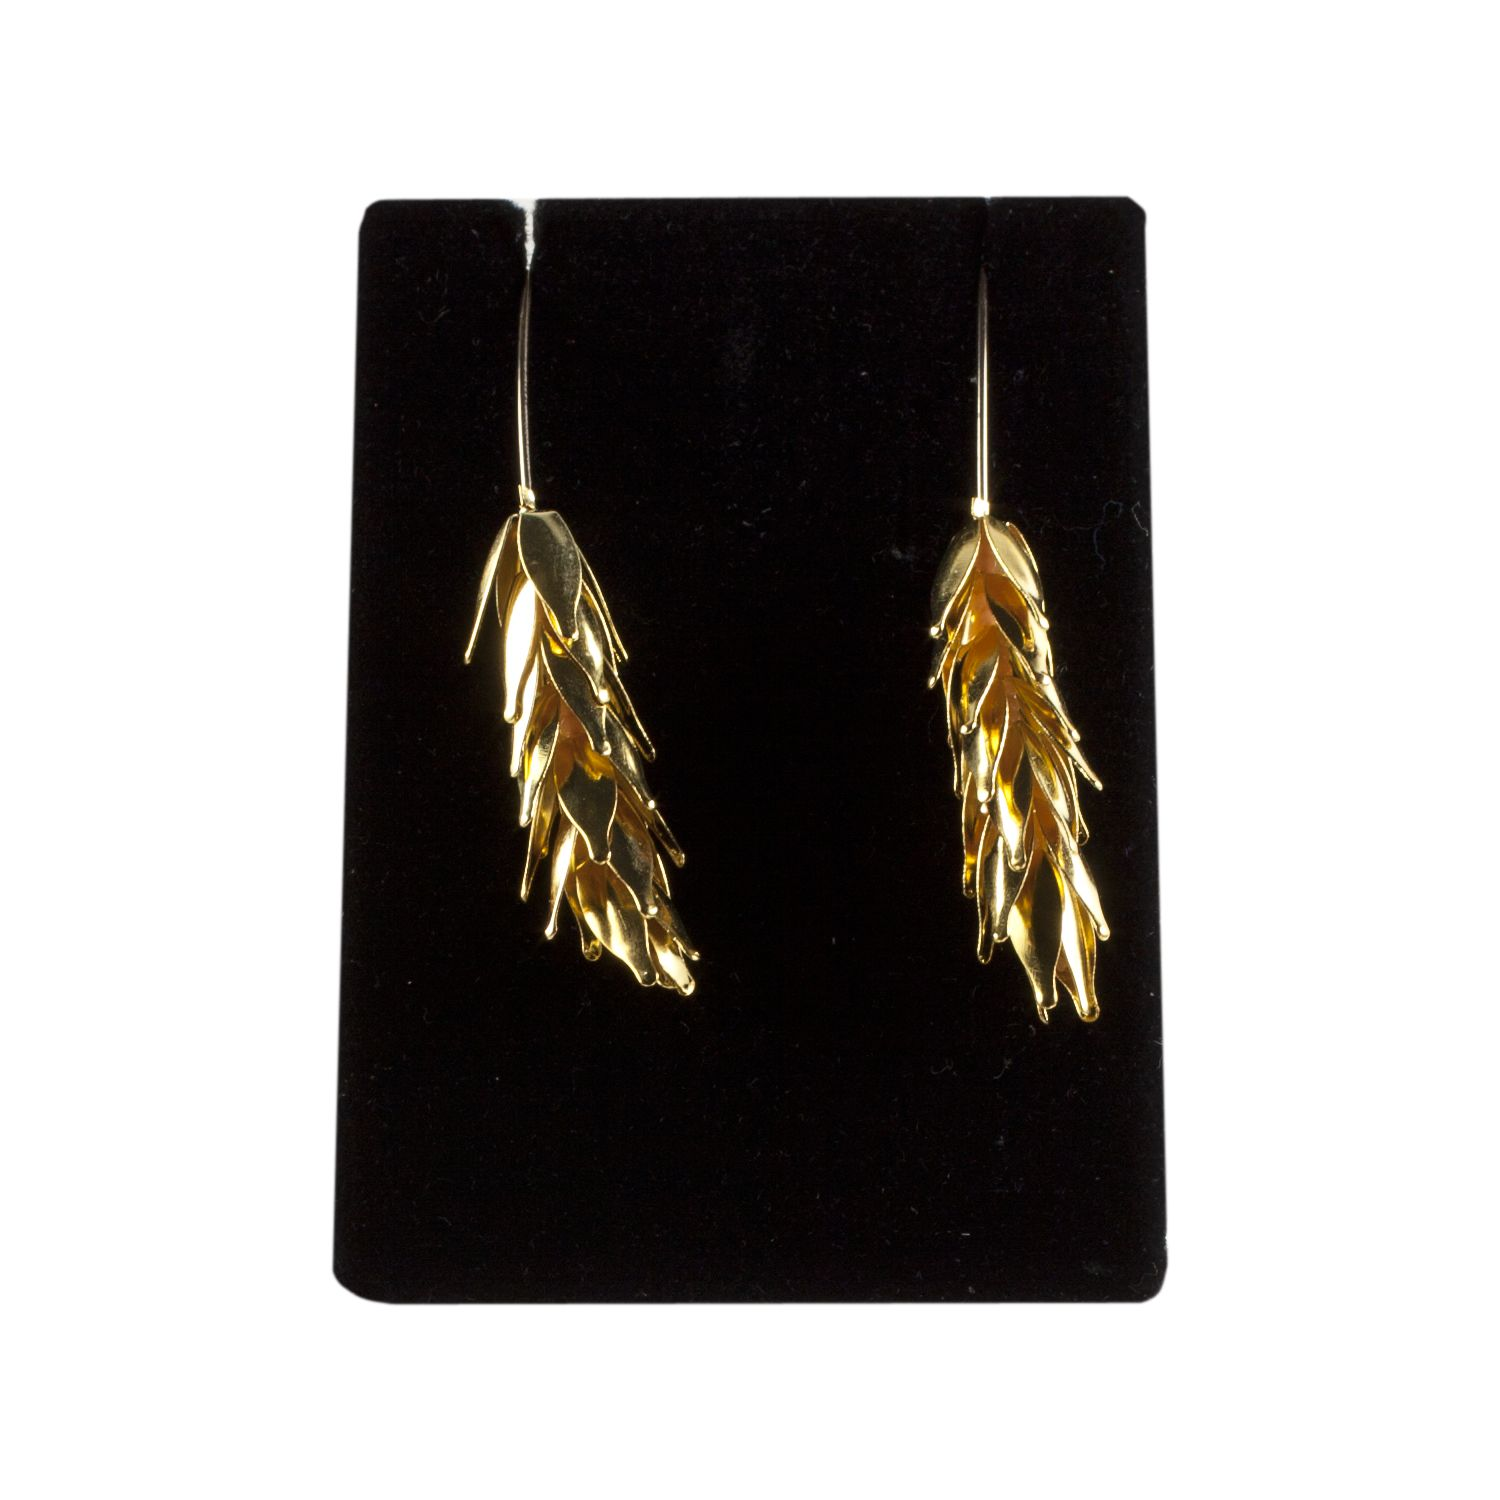 Wheat Stalk Earrings